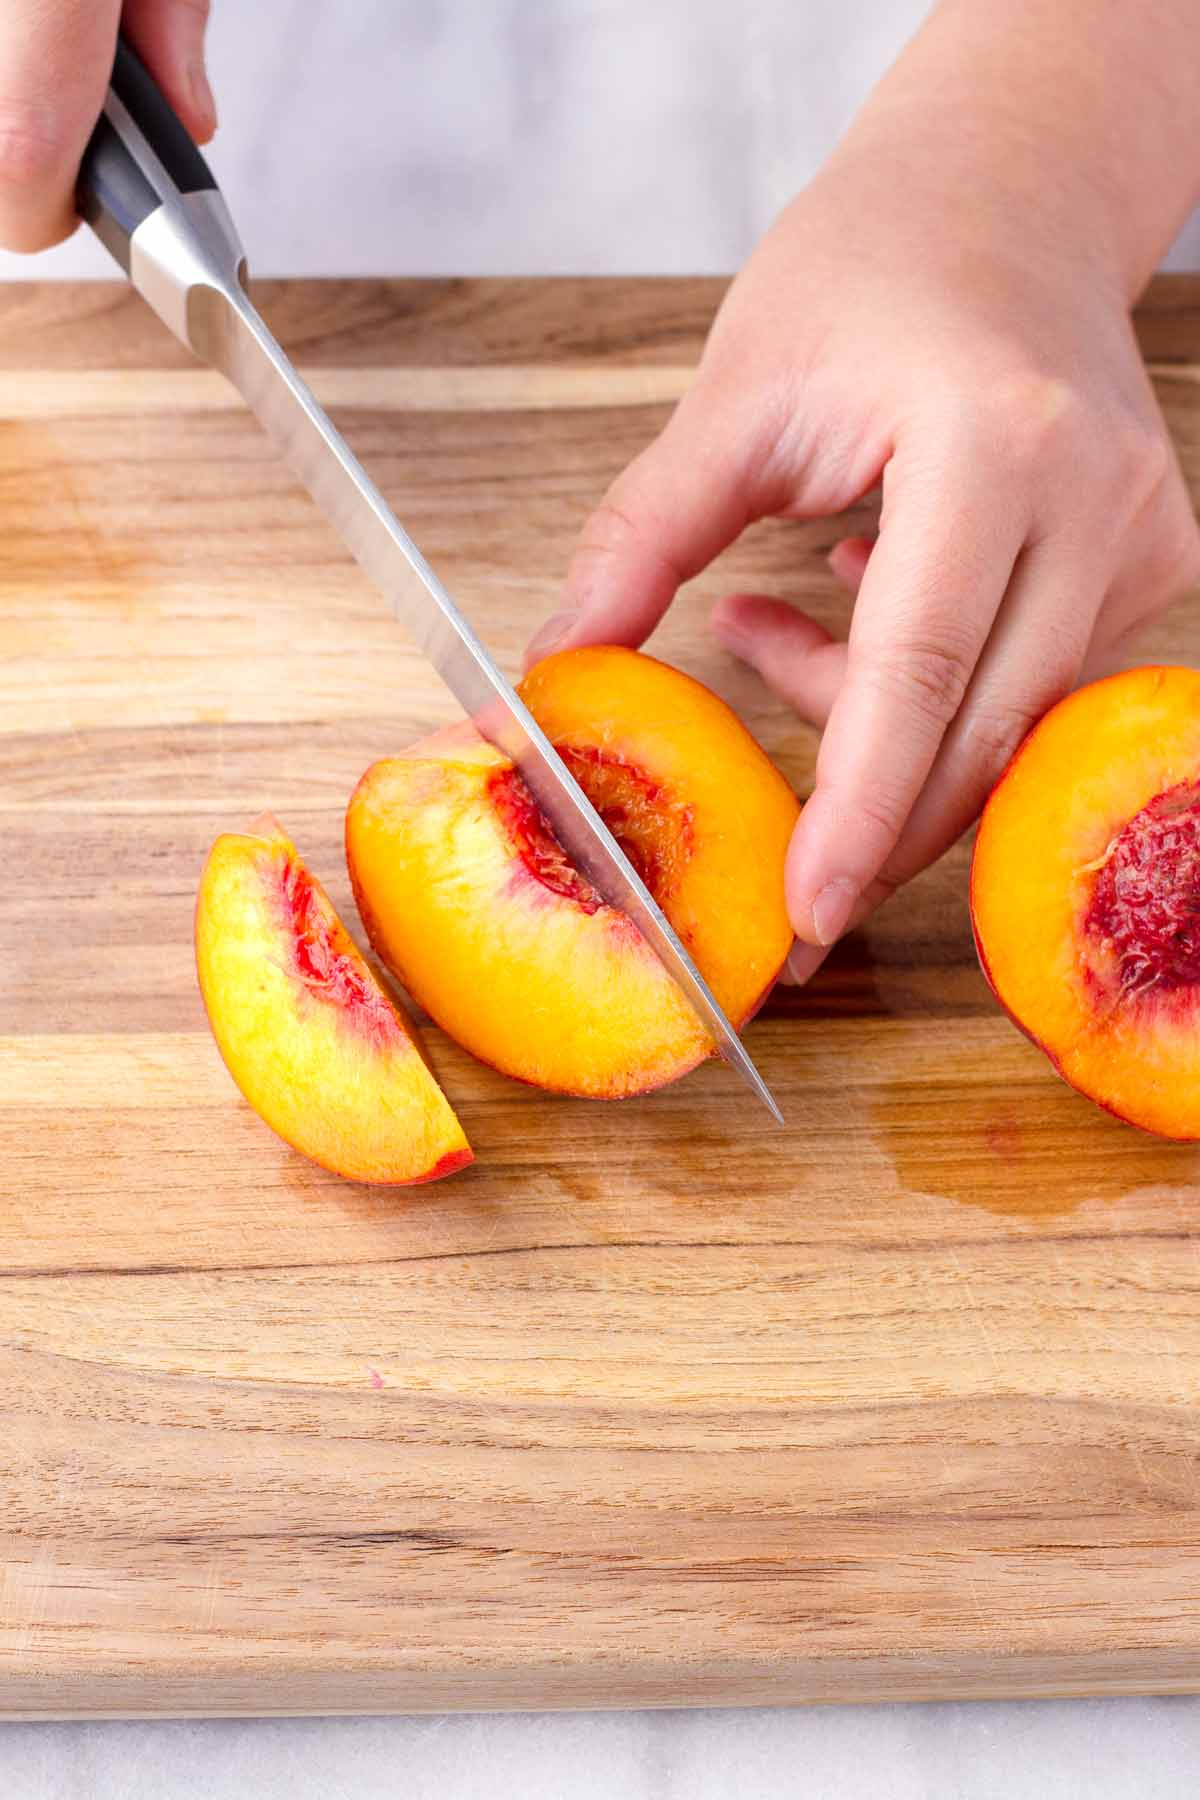 a hand slicing stone fruit into wedges